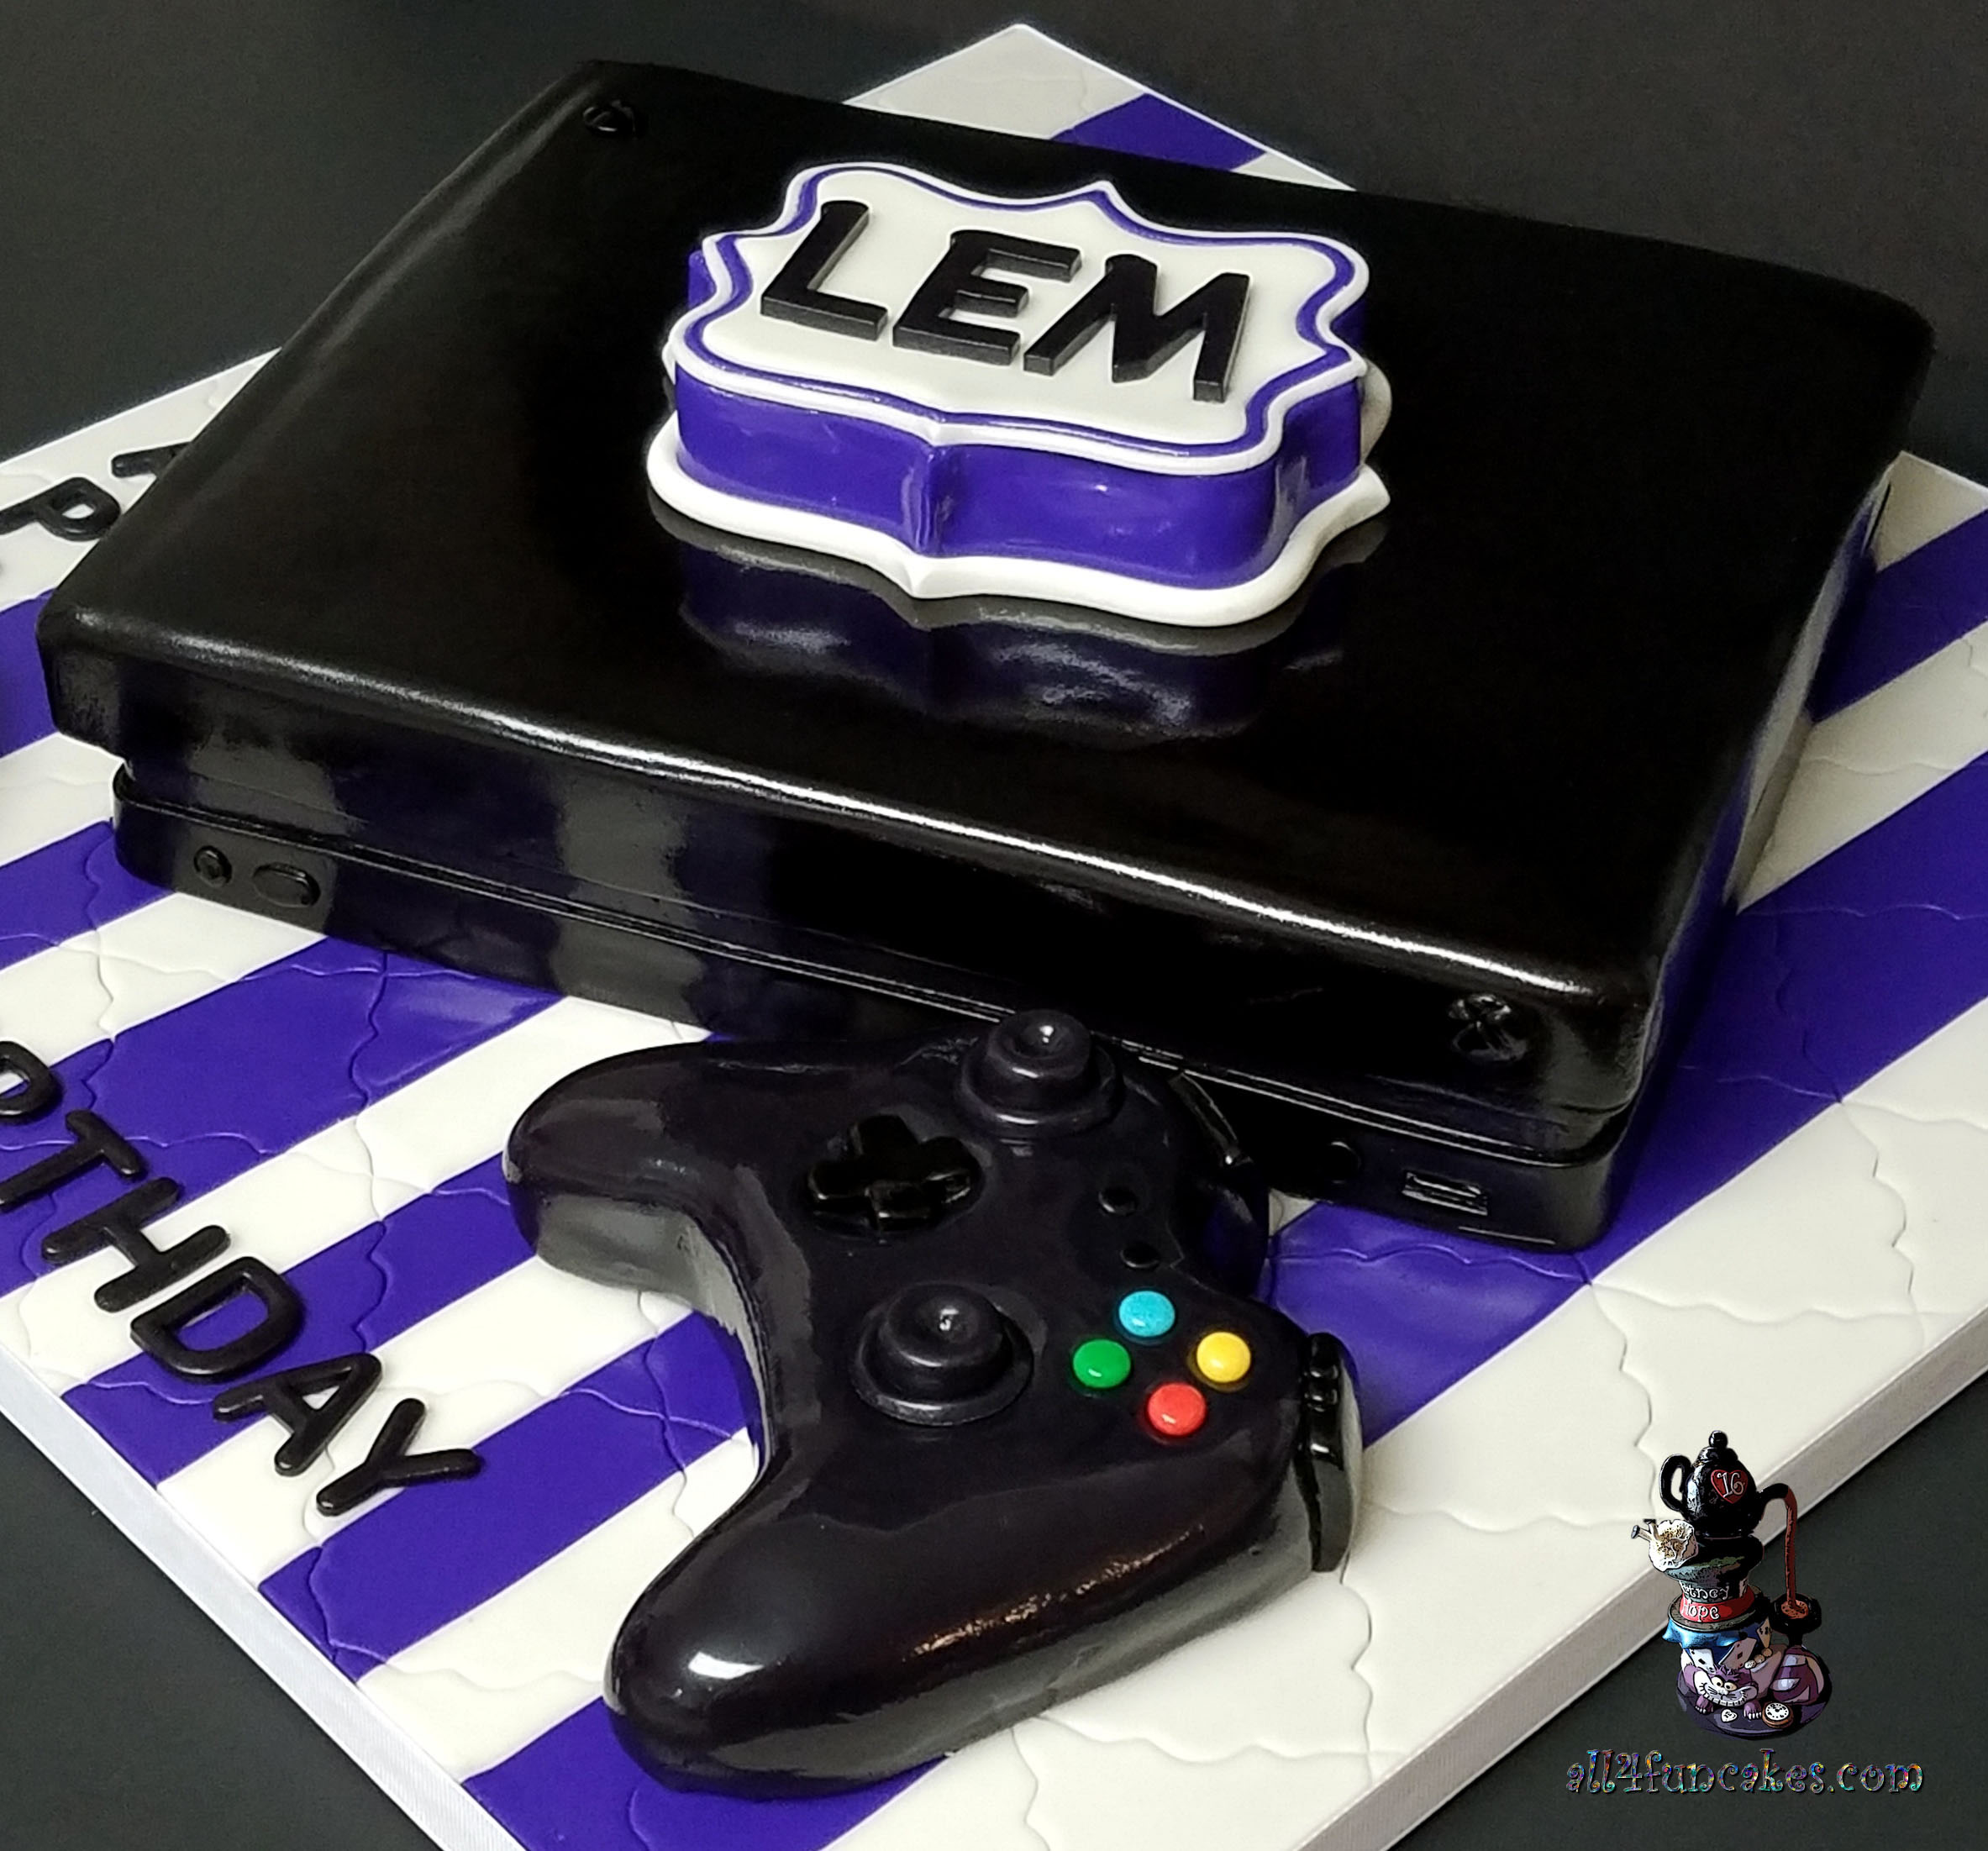 Xbox Game Console And Controller Chocolate 40th Birthday Cake By All4Fun Cakes 03